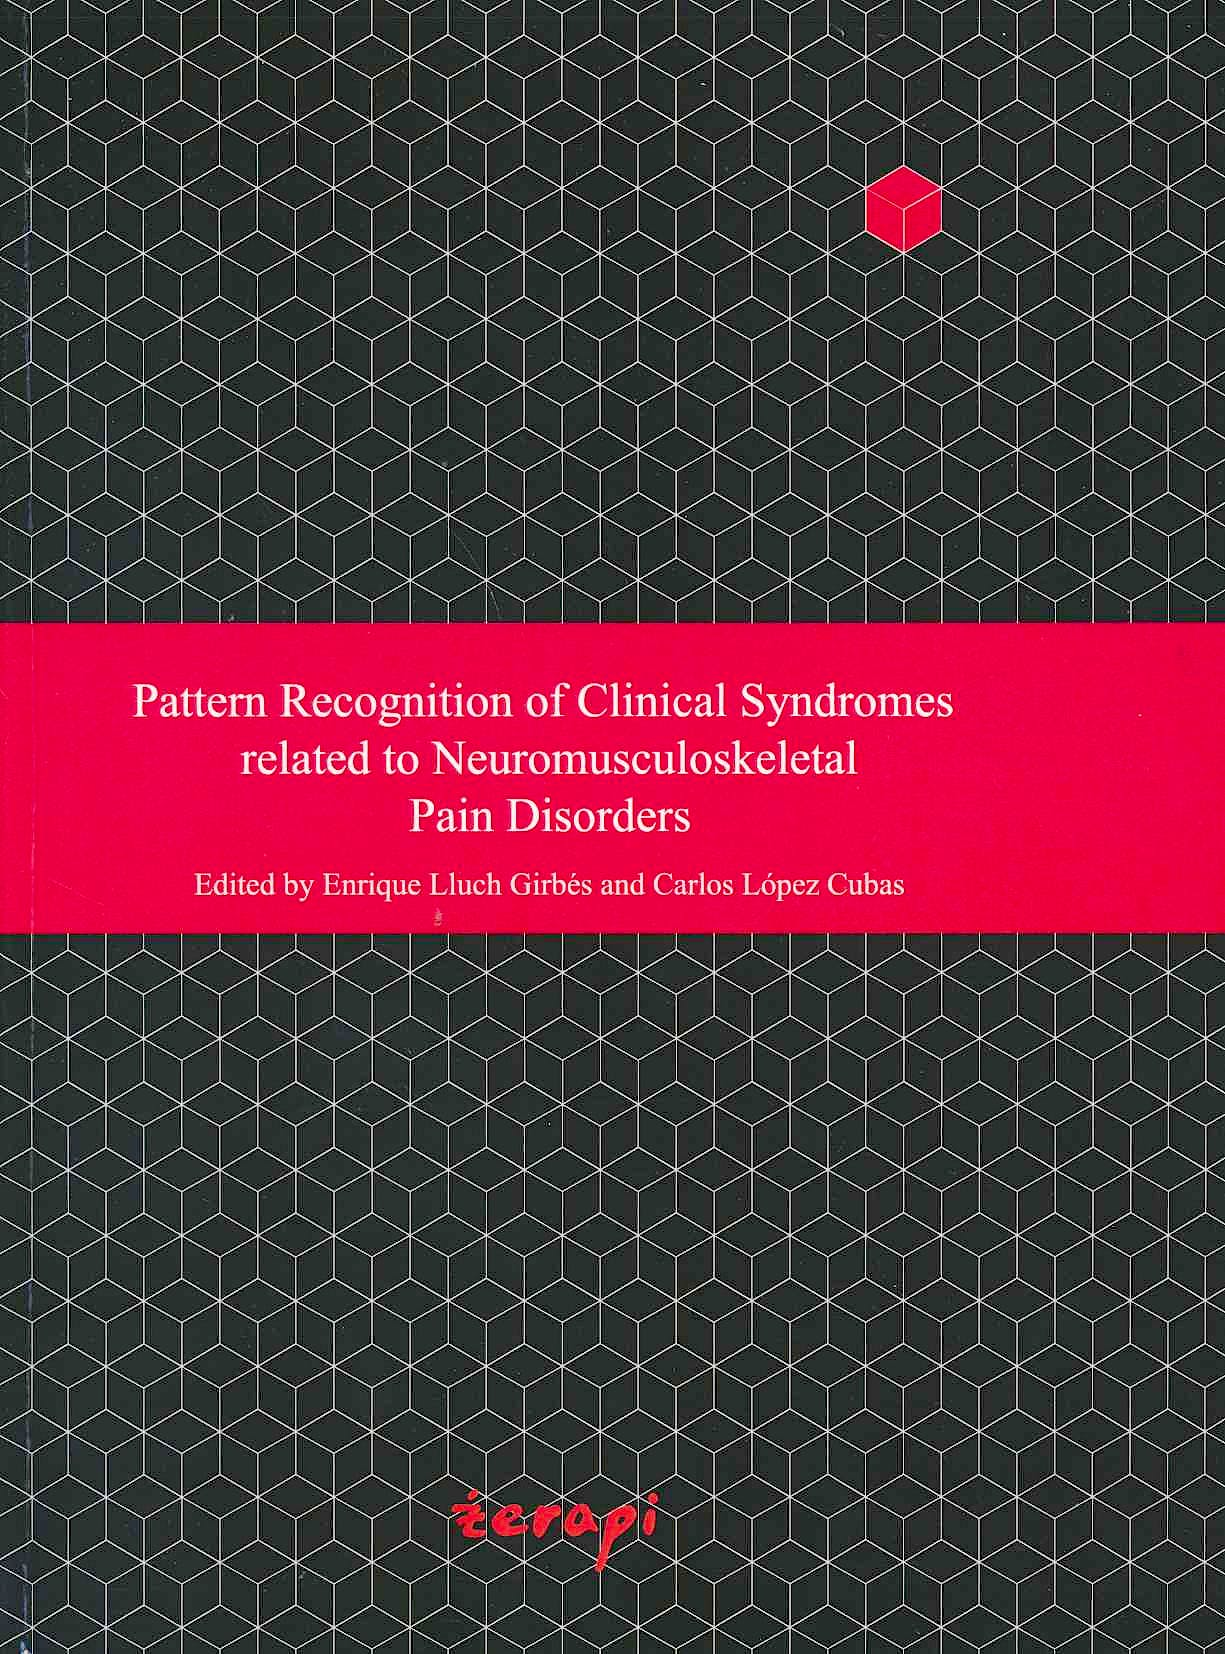 Portada del libro 9788493918743 Pattern Recognition of Clinical Syndromes Related to Neuromusculoskeletal Pain Disorders**en Reimpresion Disponible Para Primeros De Abril**